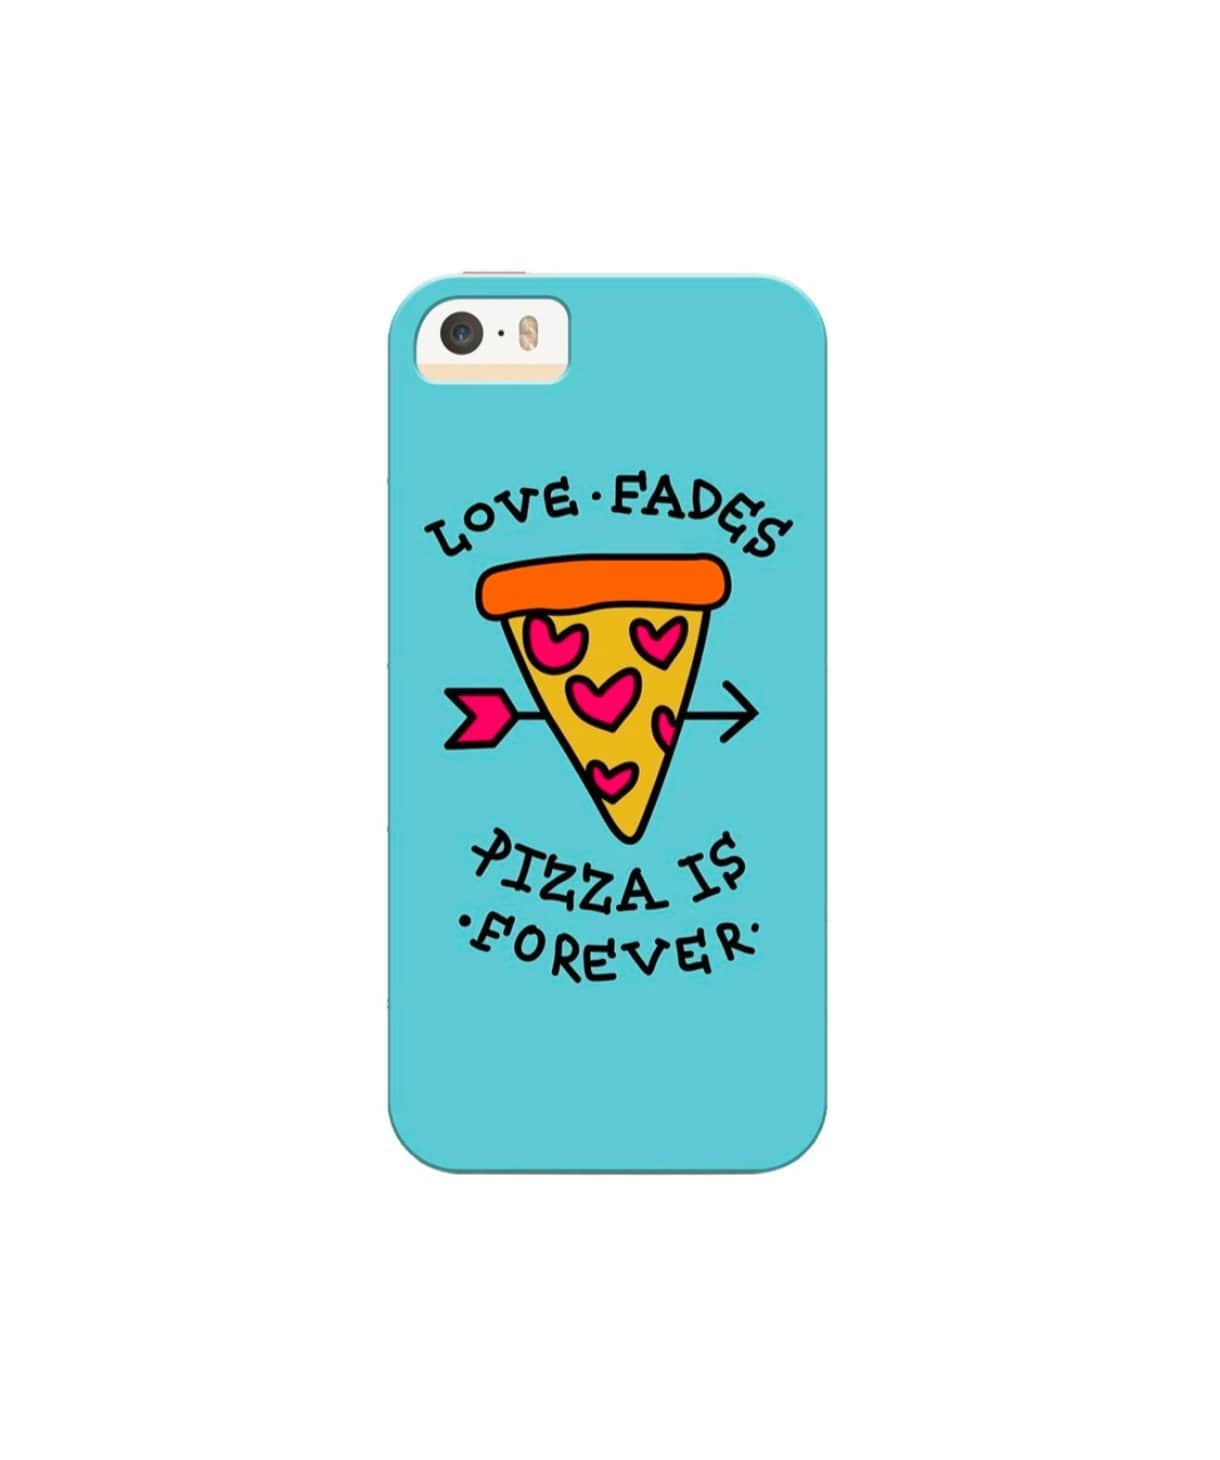 Pizza Is Forever IPhone Cover (Personalisation Available) - Uptownie